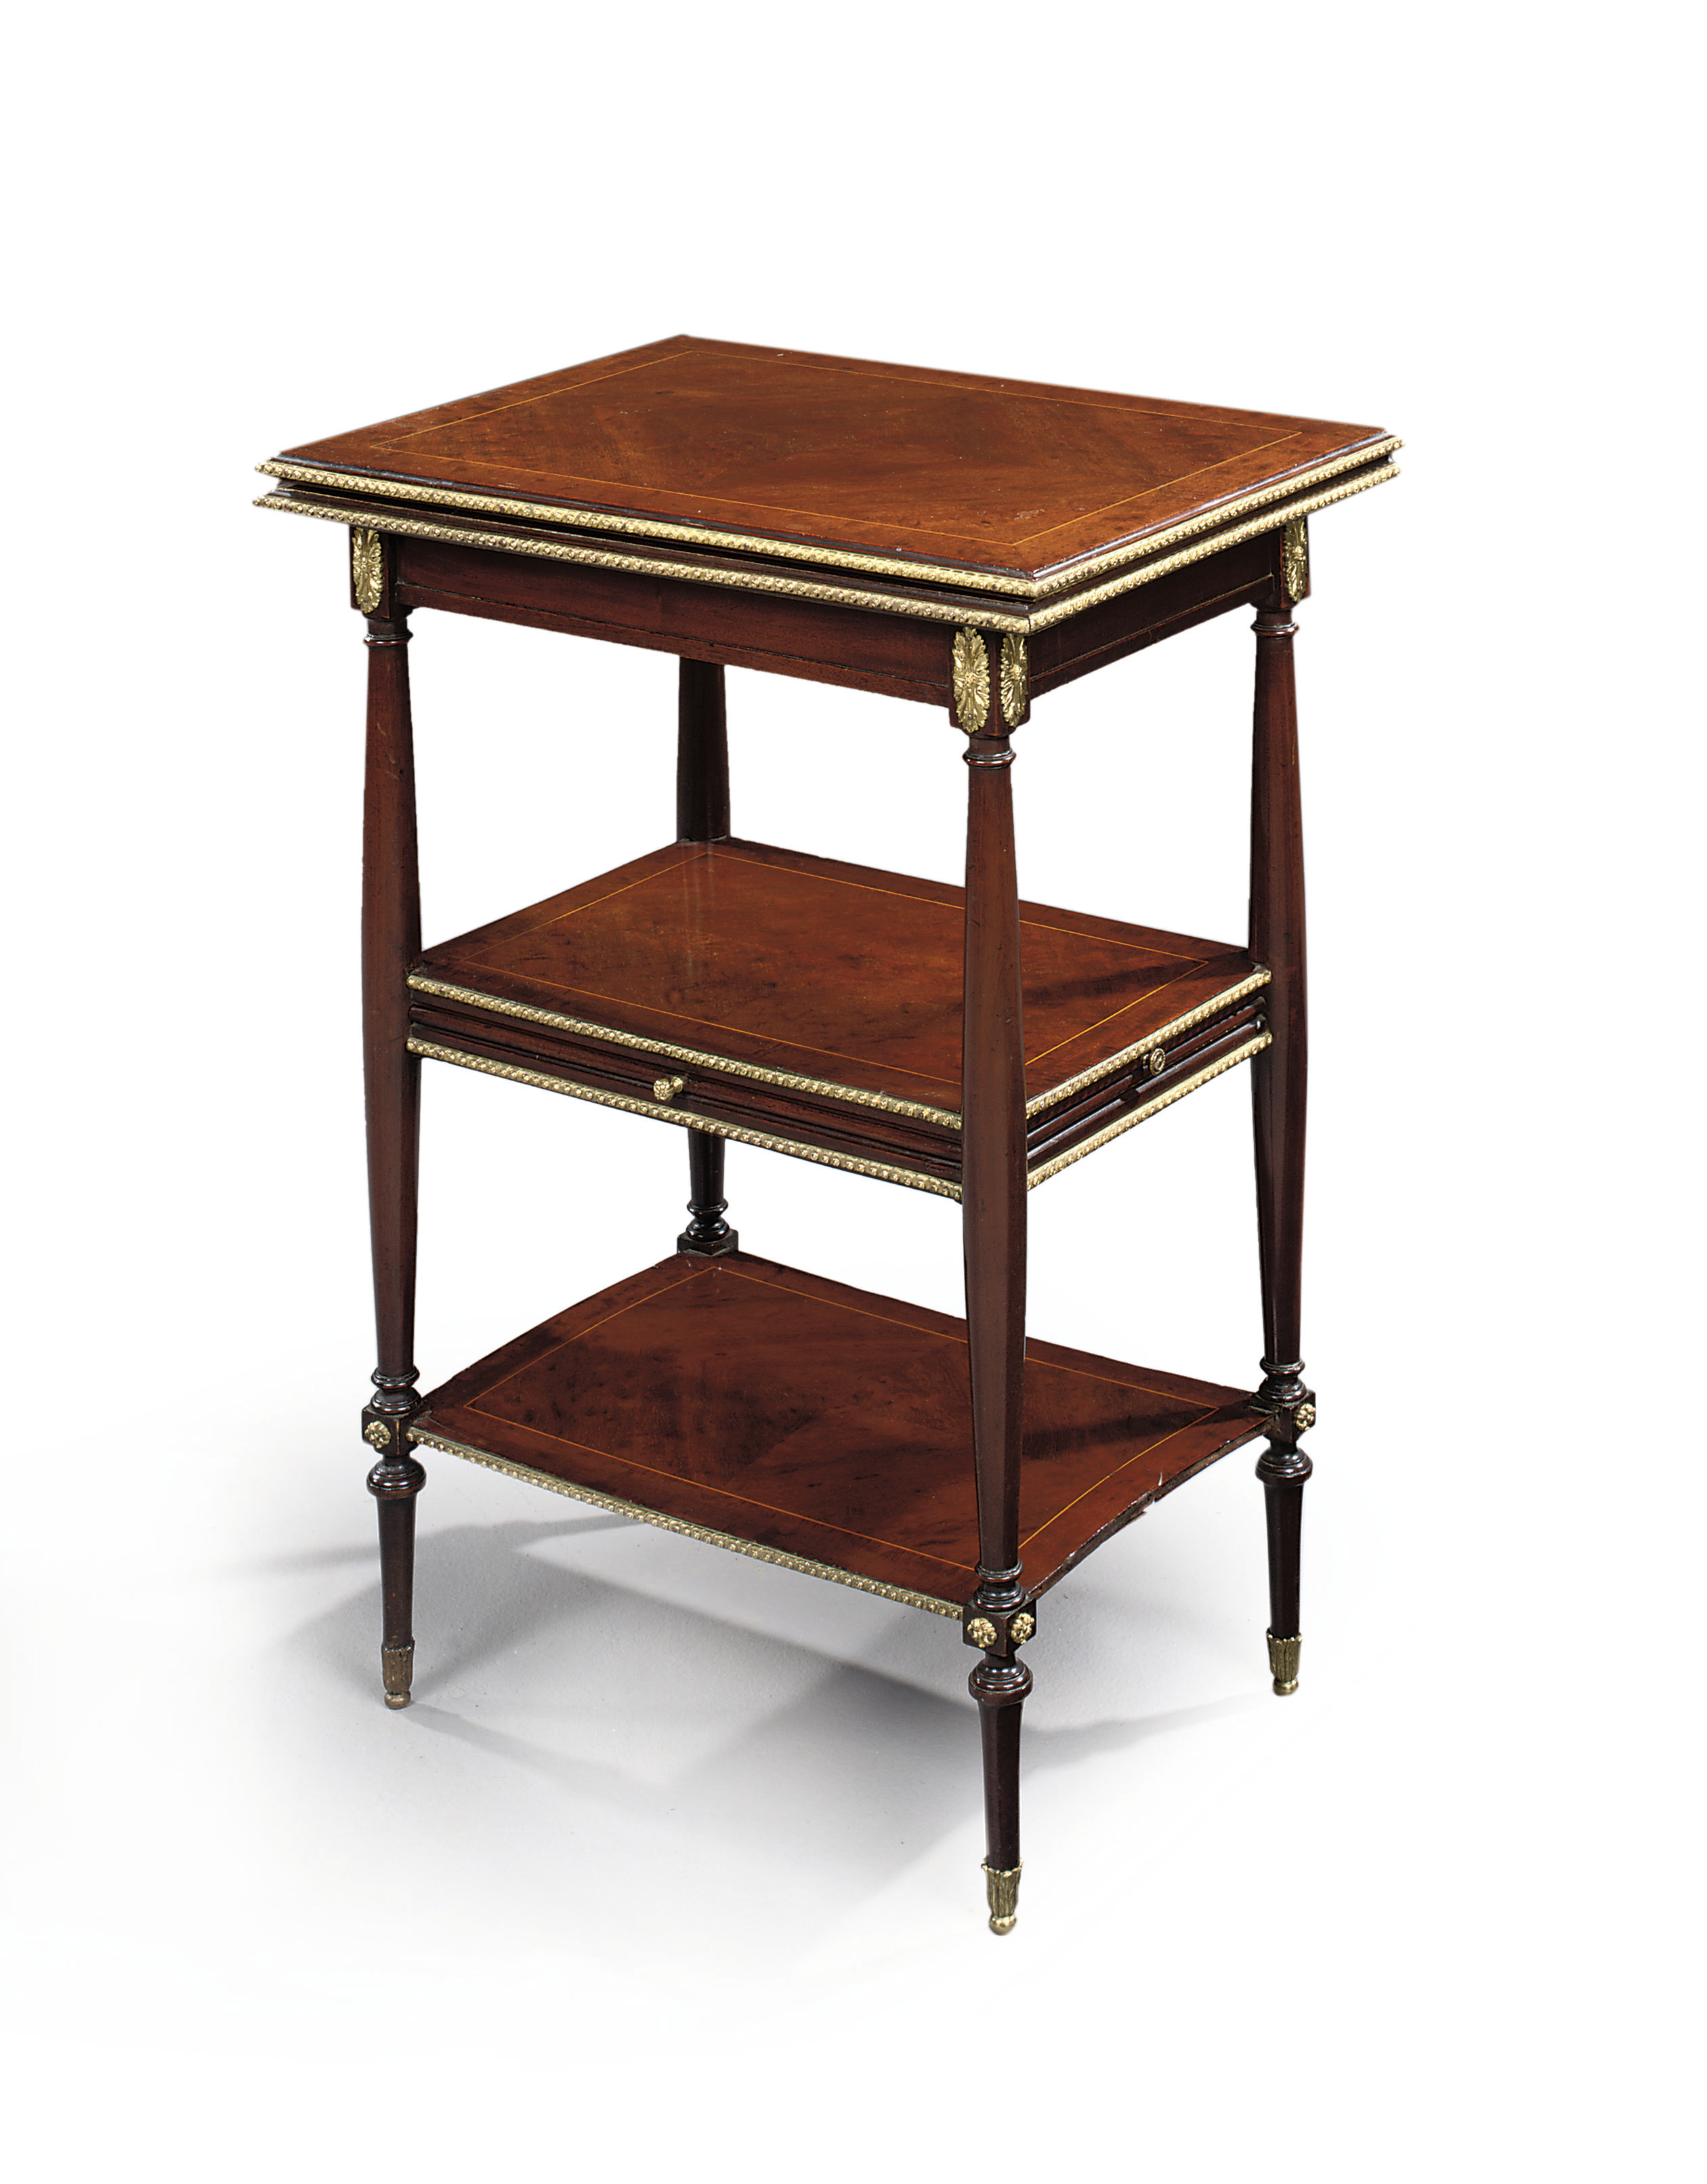 A MID-VICTORIAN ORMOLU-MOUNTED MAHOGANY ETAGERE